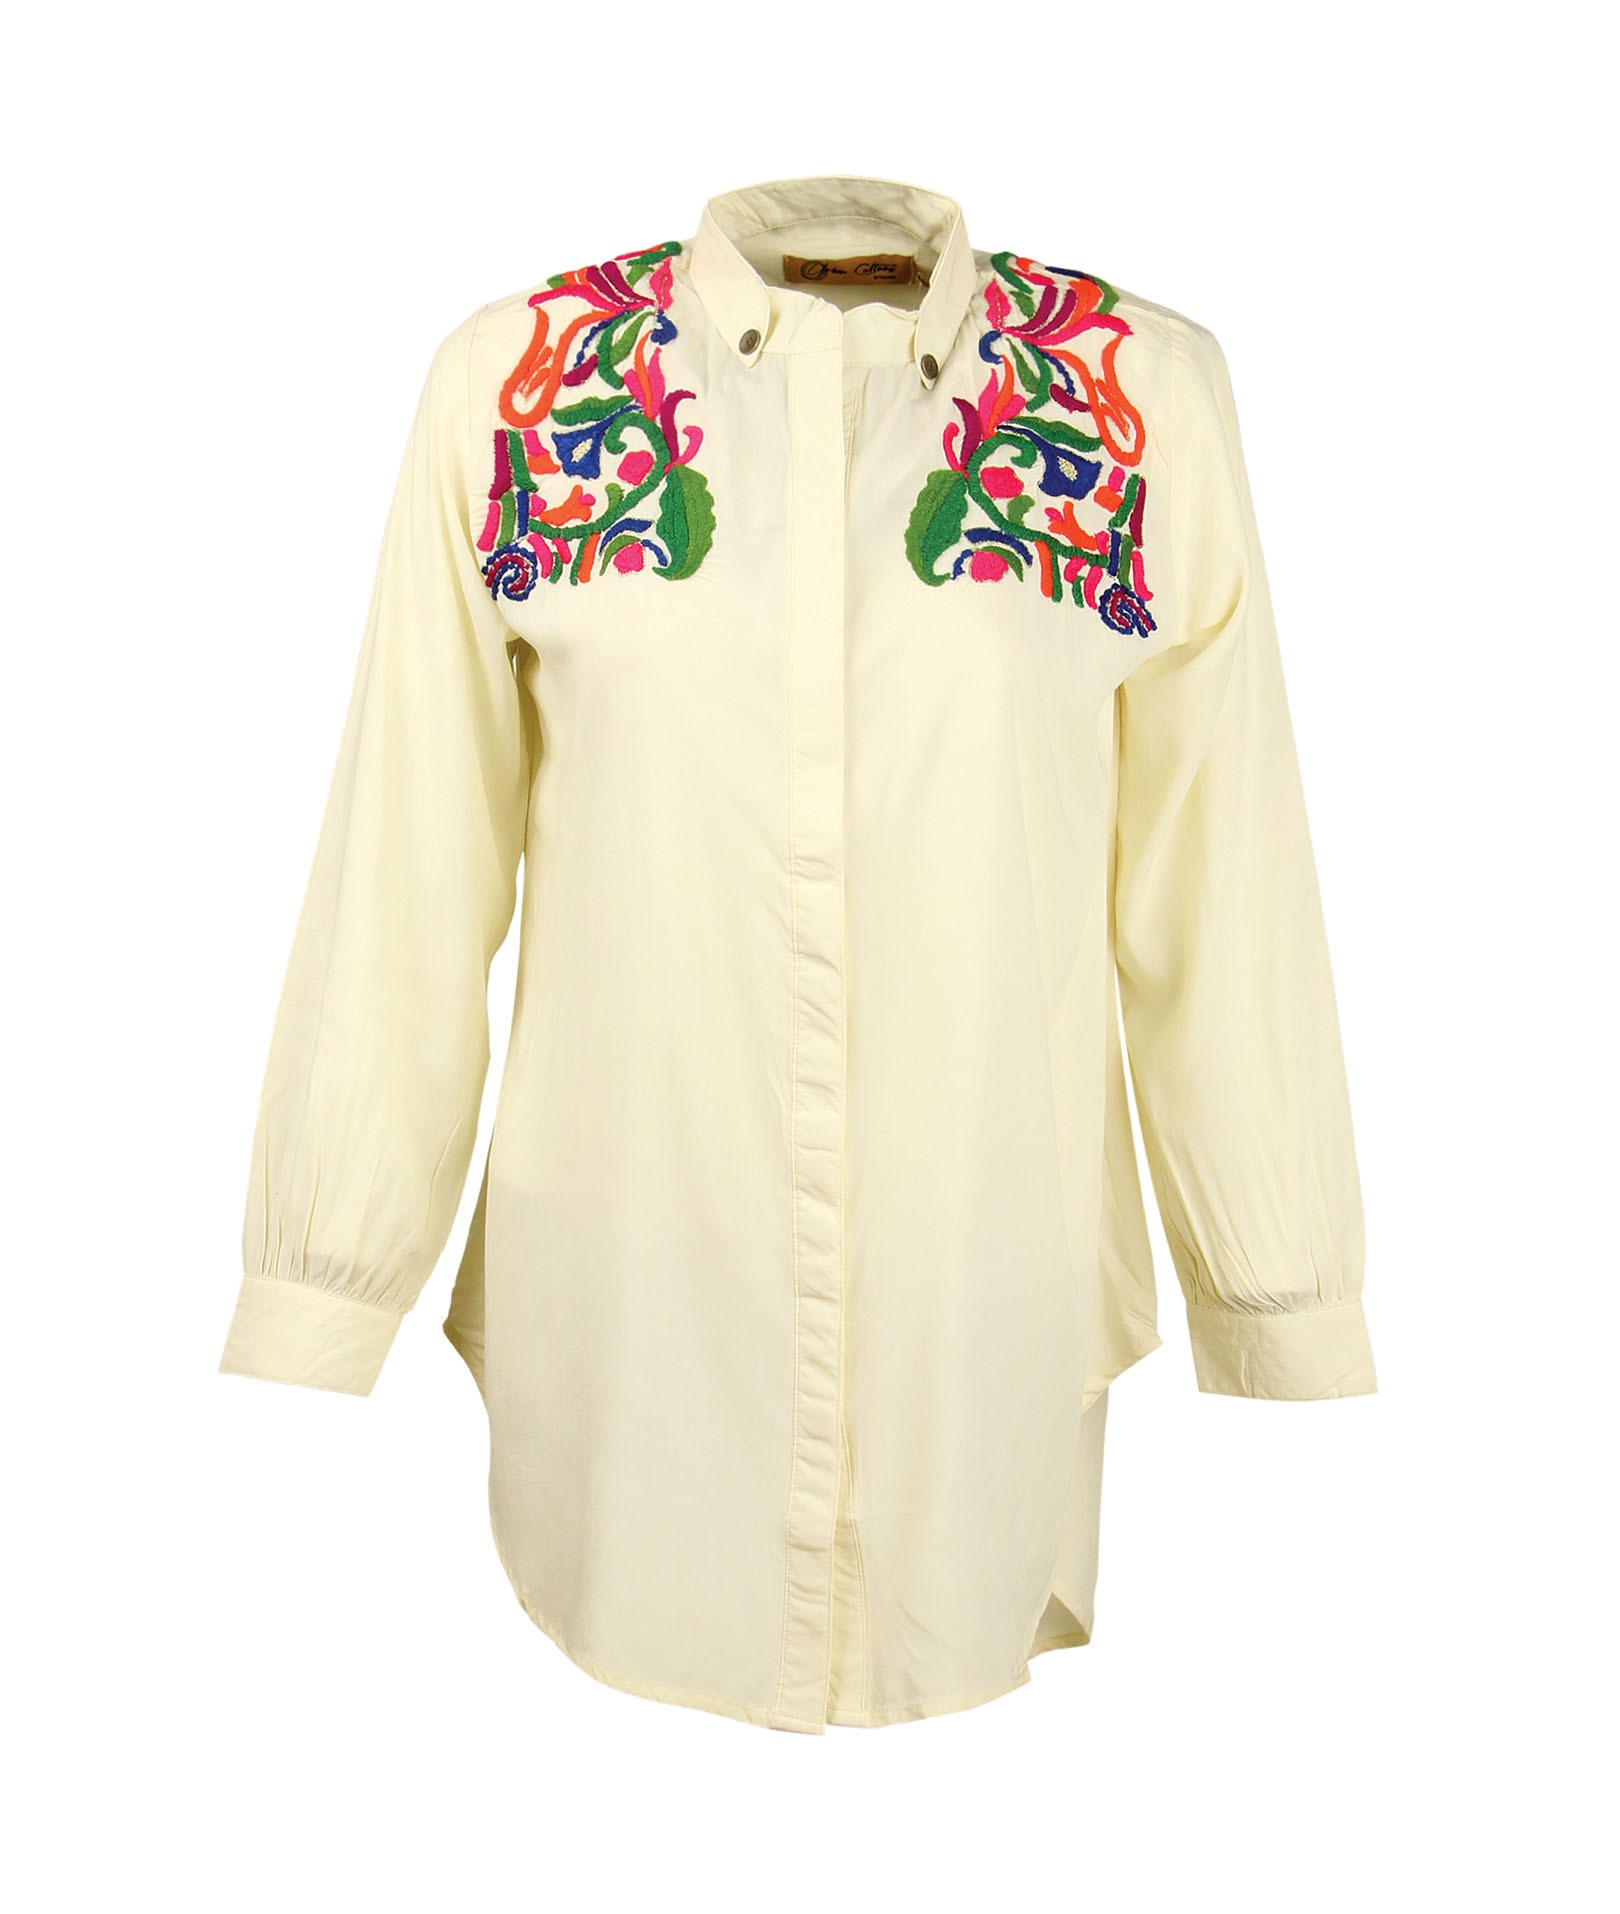 Urban-Culture-Shirts-Collection-2014-2015 (9)